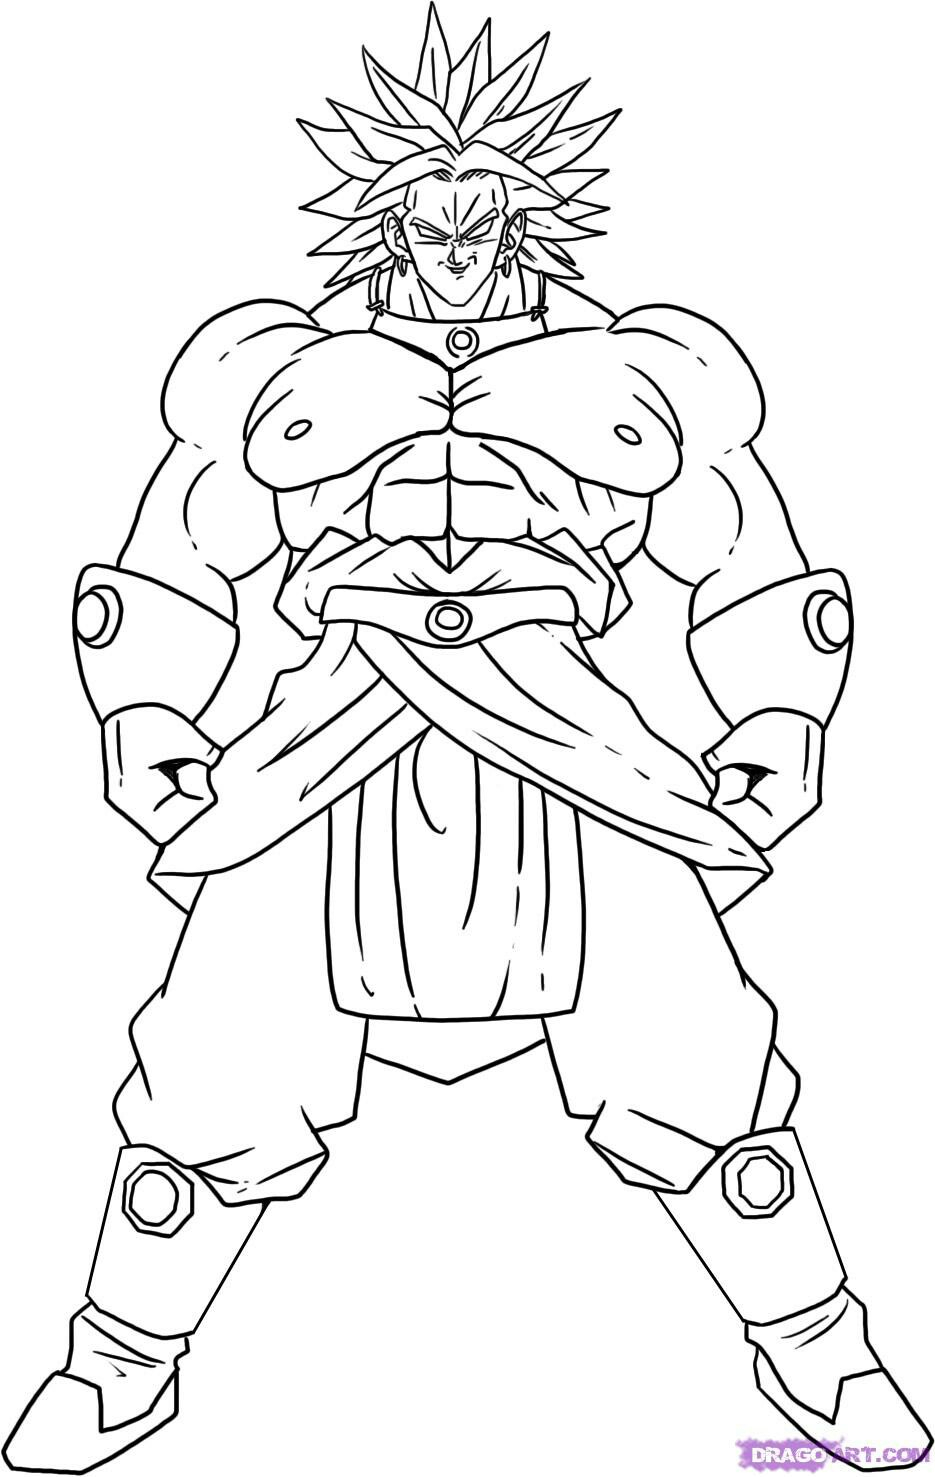 dragon ball z color hachiyake dbz free coloring pages z color dragon ball